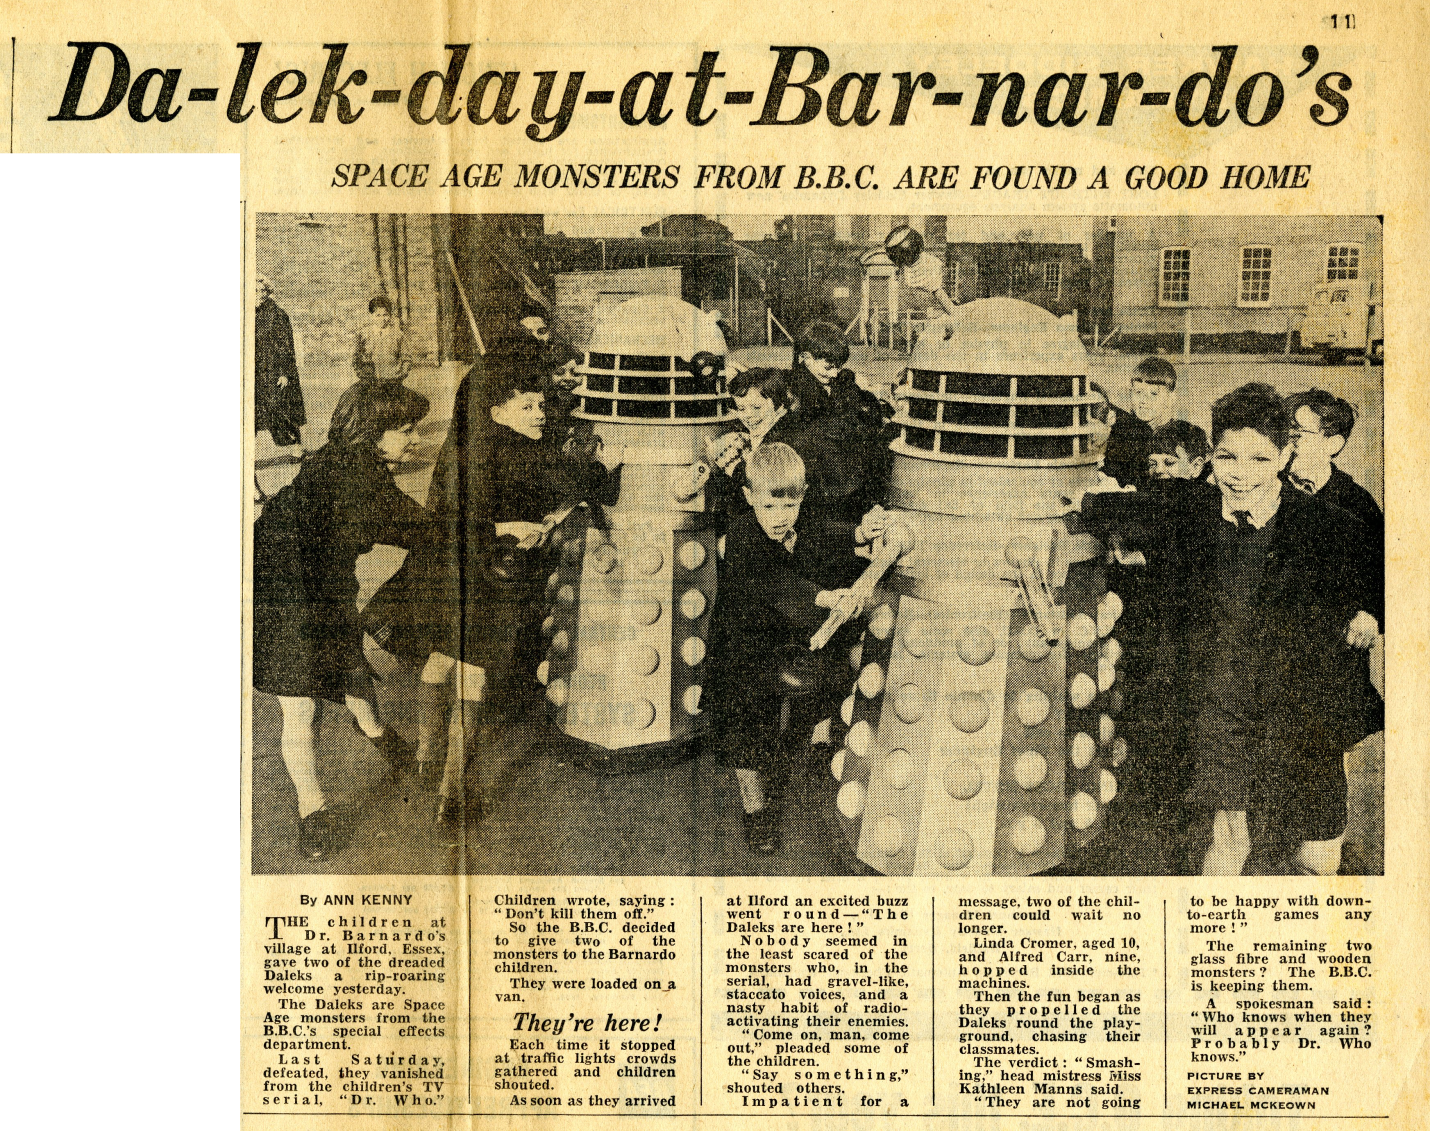 Daily Express, 5 February 1964. Article about the donation of two Daleks to the Dr. Barnardo's Home. From the Ray Cusick cuttings collection